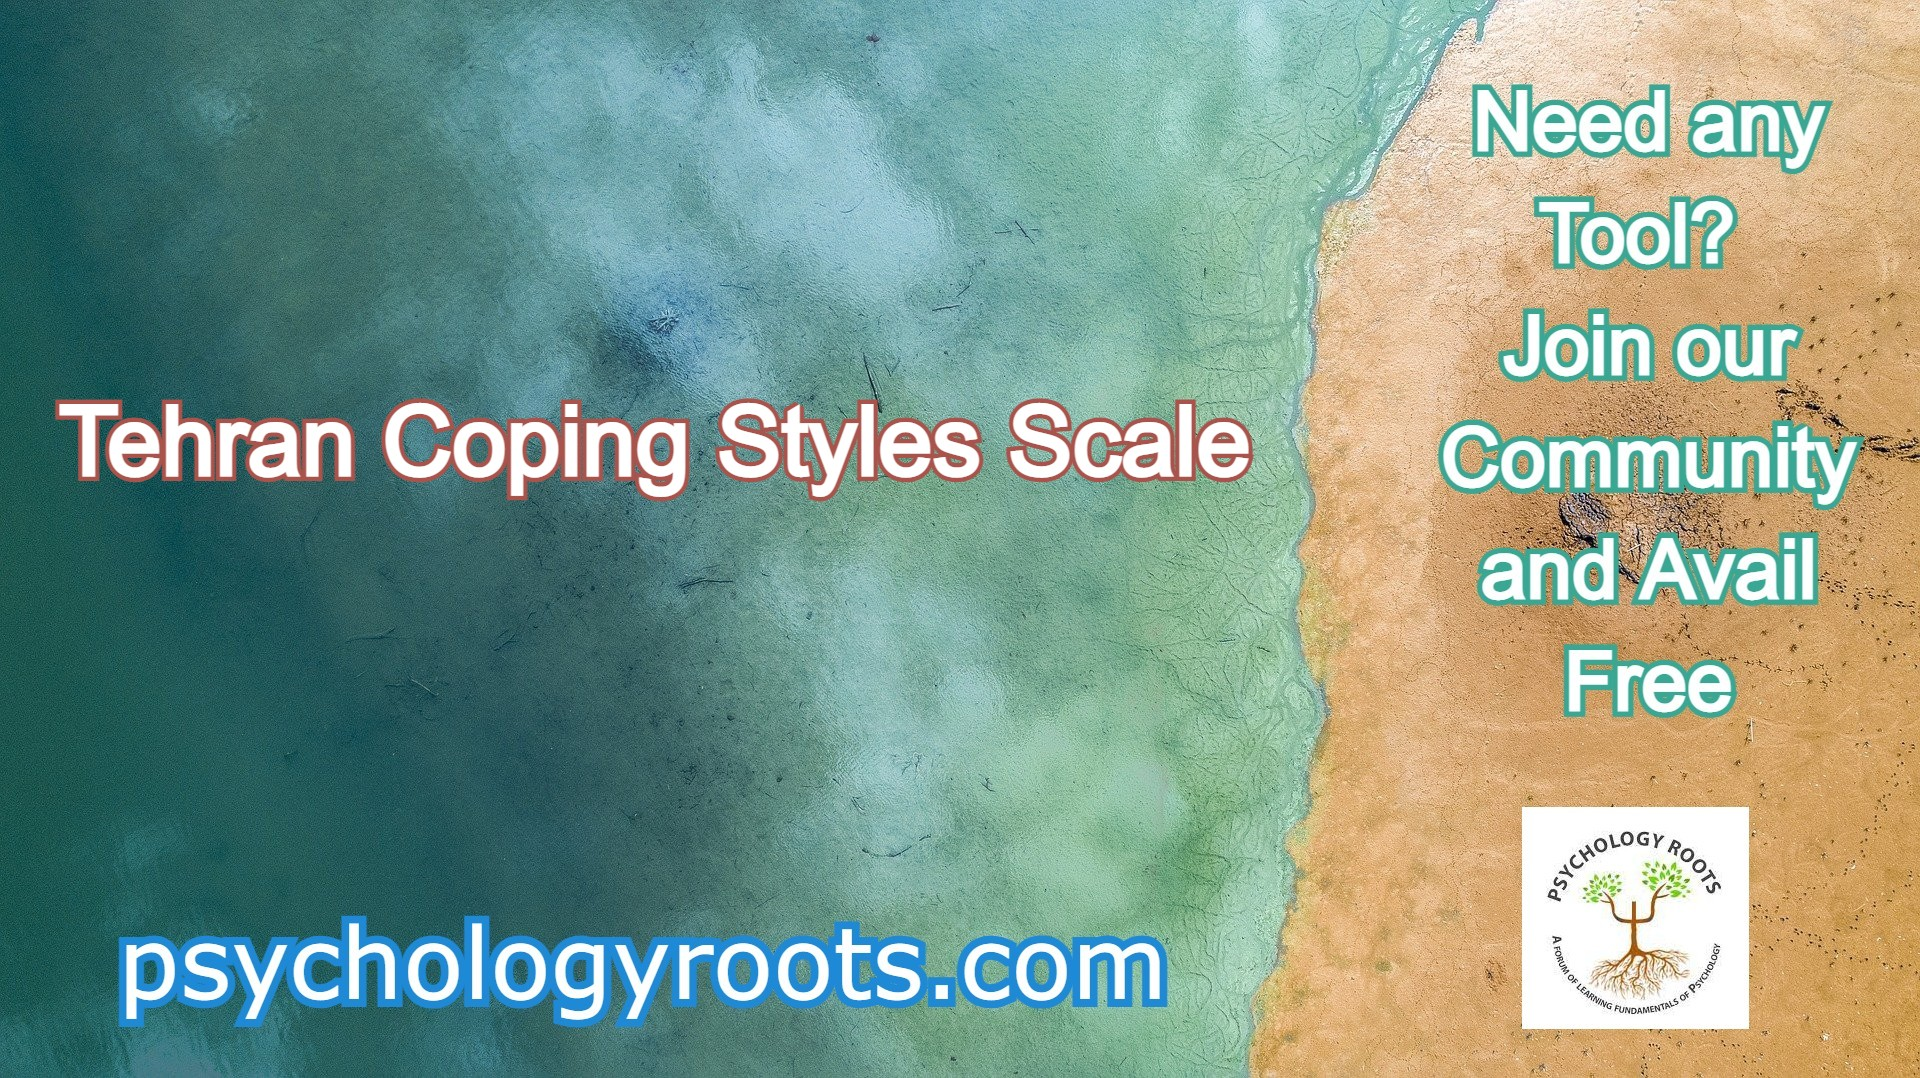 Tehran Coping Styles Scale